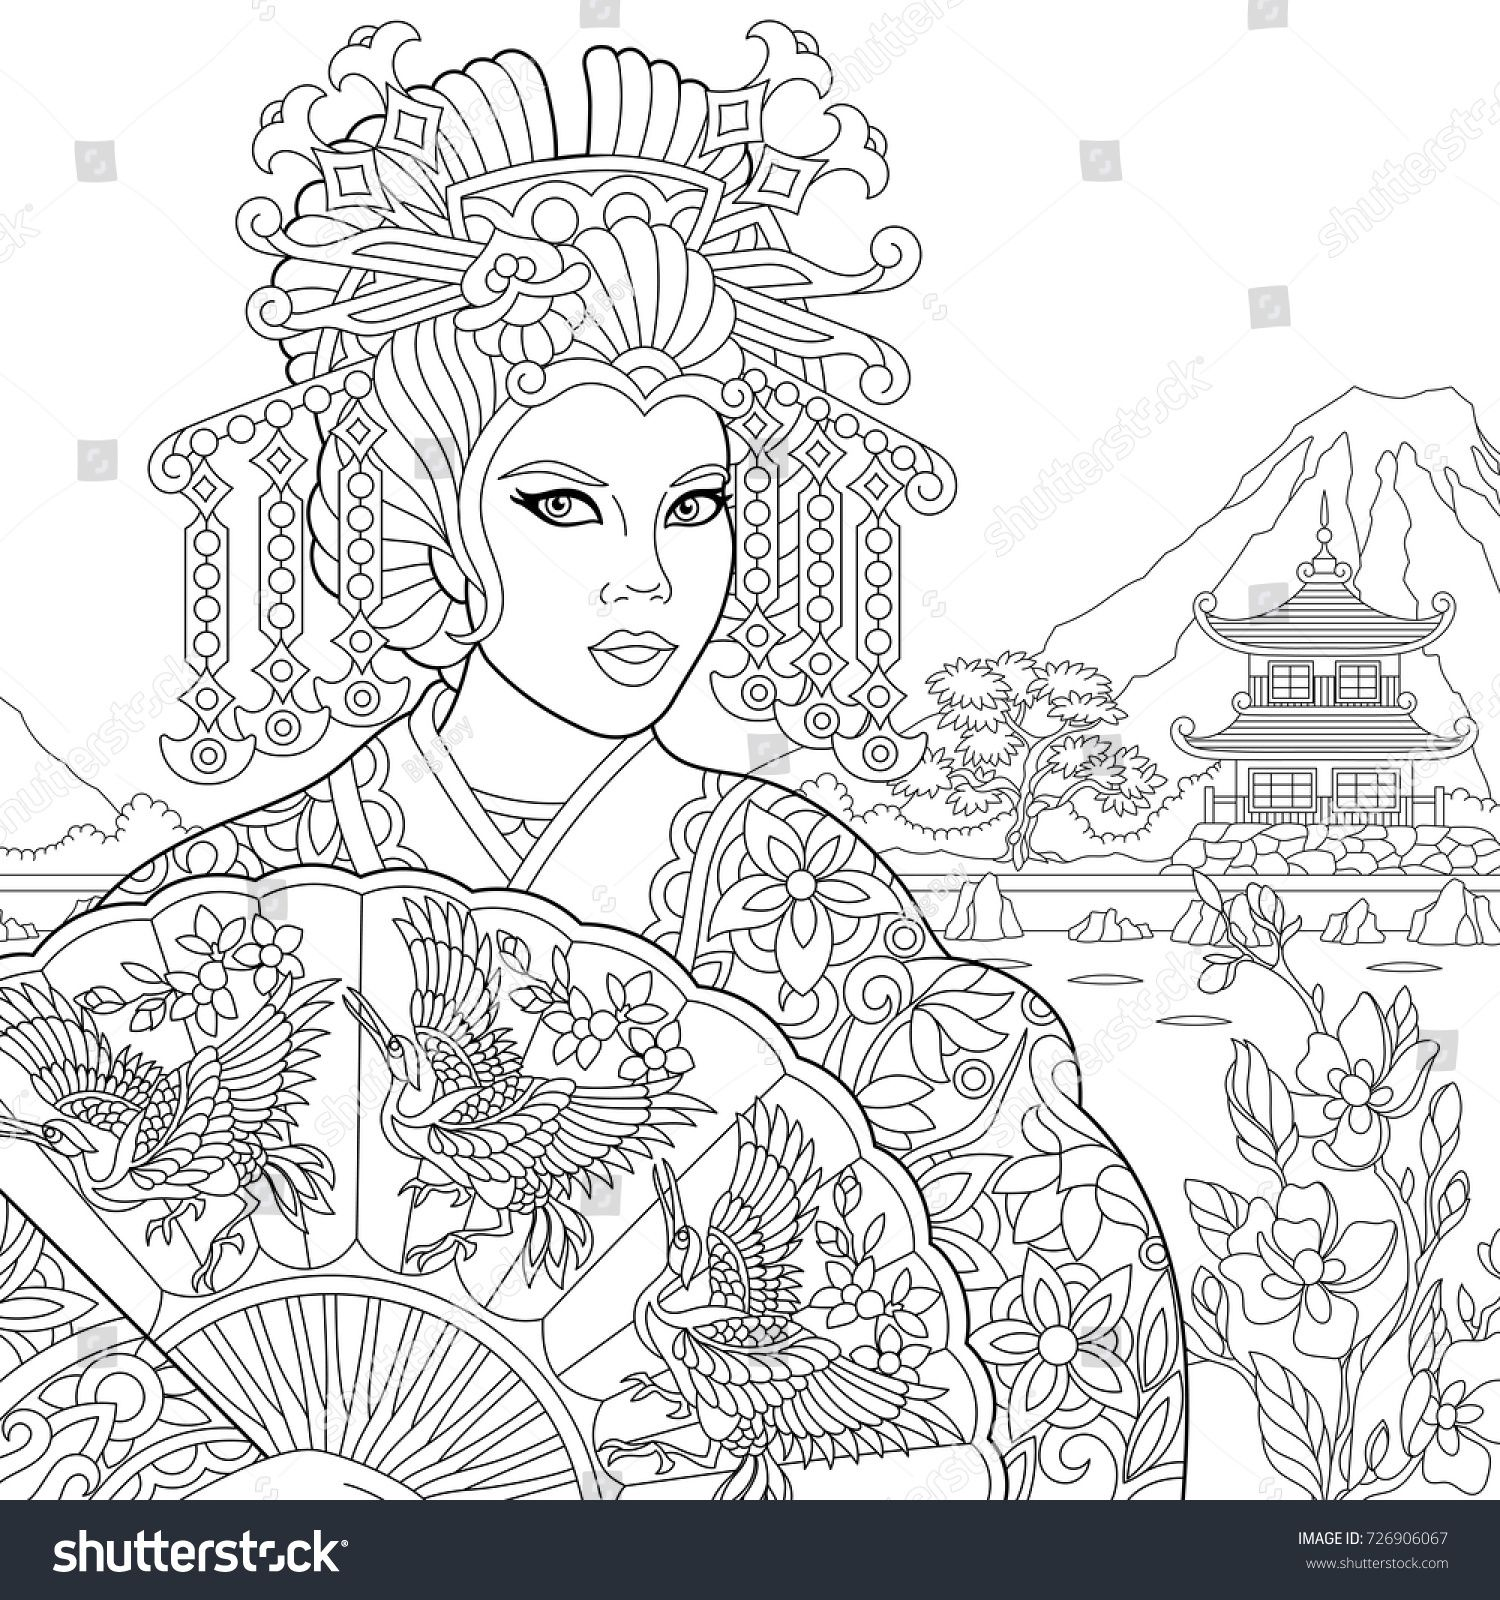 Coloring Page Of Geisha Japanese Dancing Actress Holding Paper Fan With Crane Birds Freehand Sketch Drawing For Adult Antistress Book In